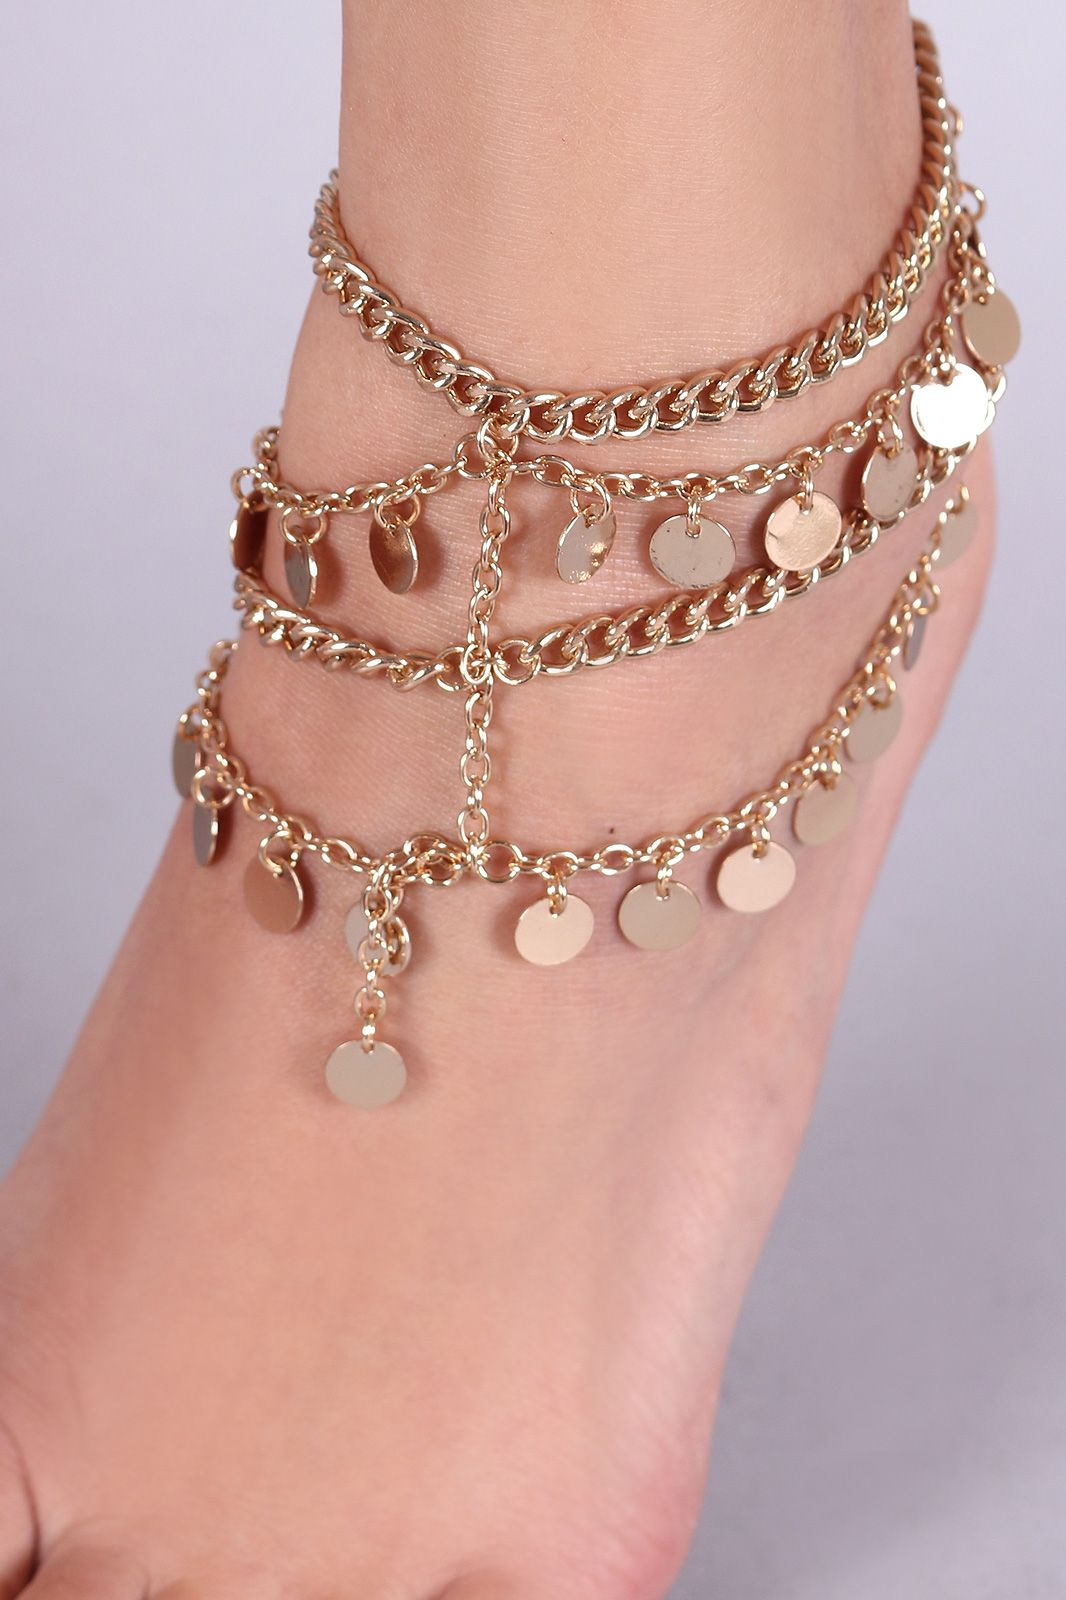 on anklets pin at pinterest women online anklet prices shopping for painjan honest by hayagi payal